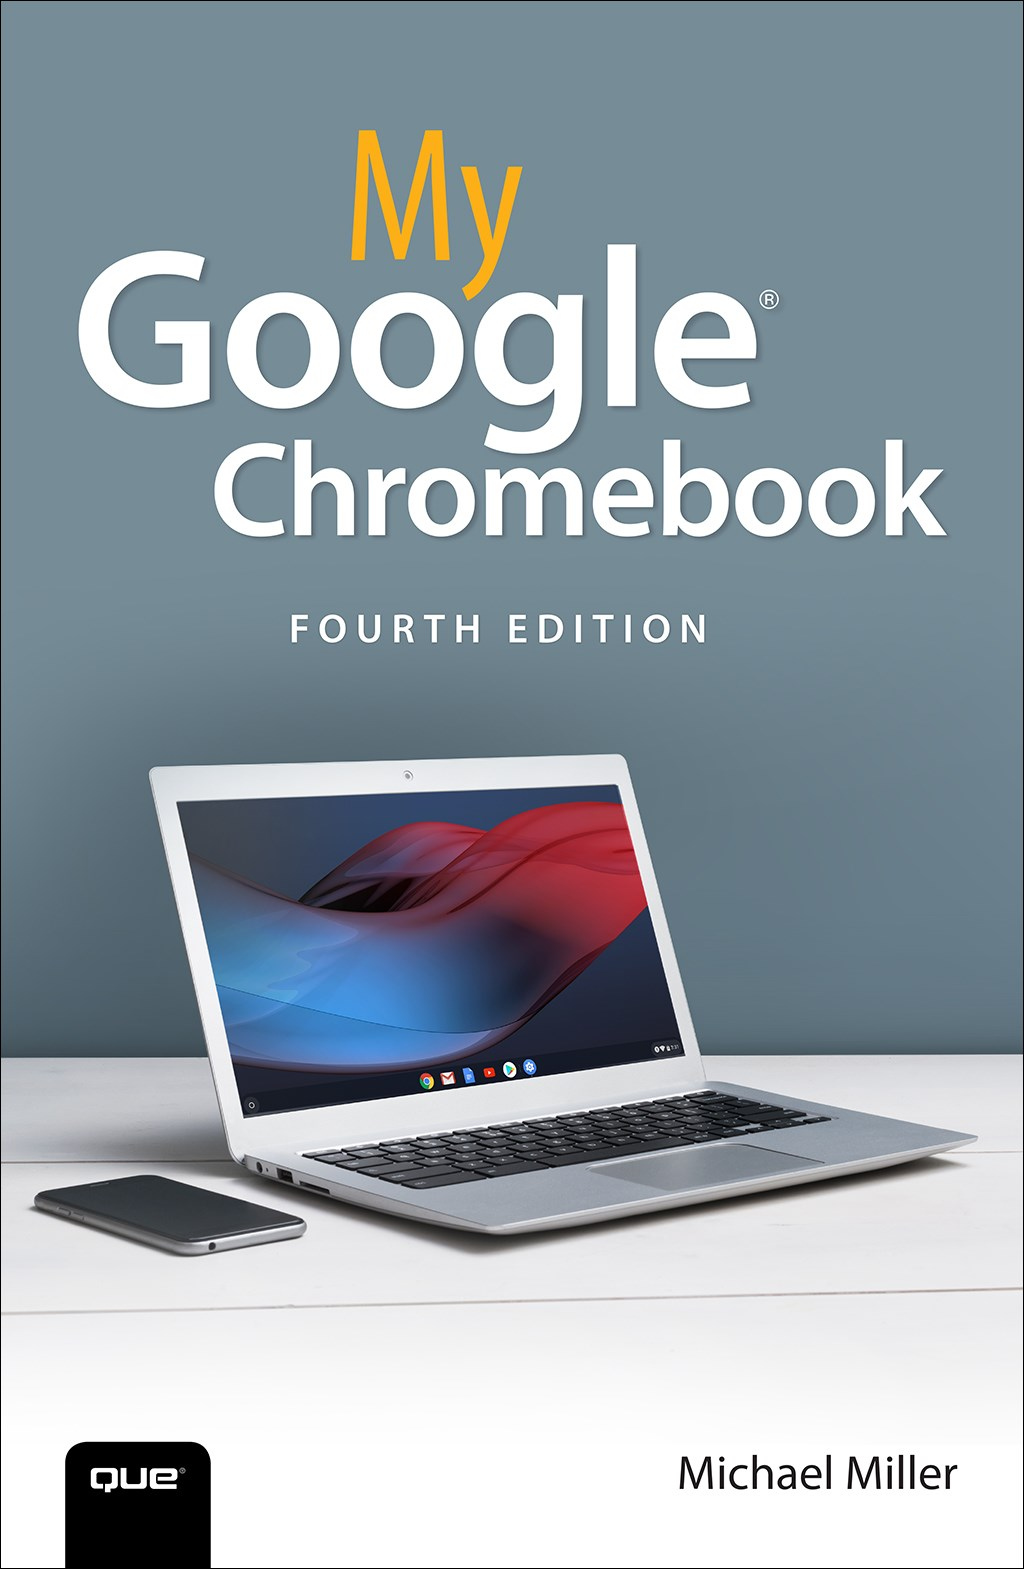 My Google Chromebook, 4th Edition